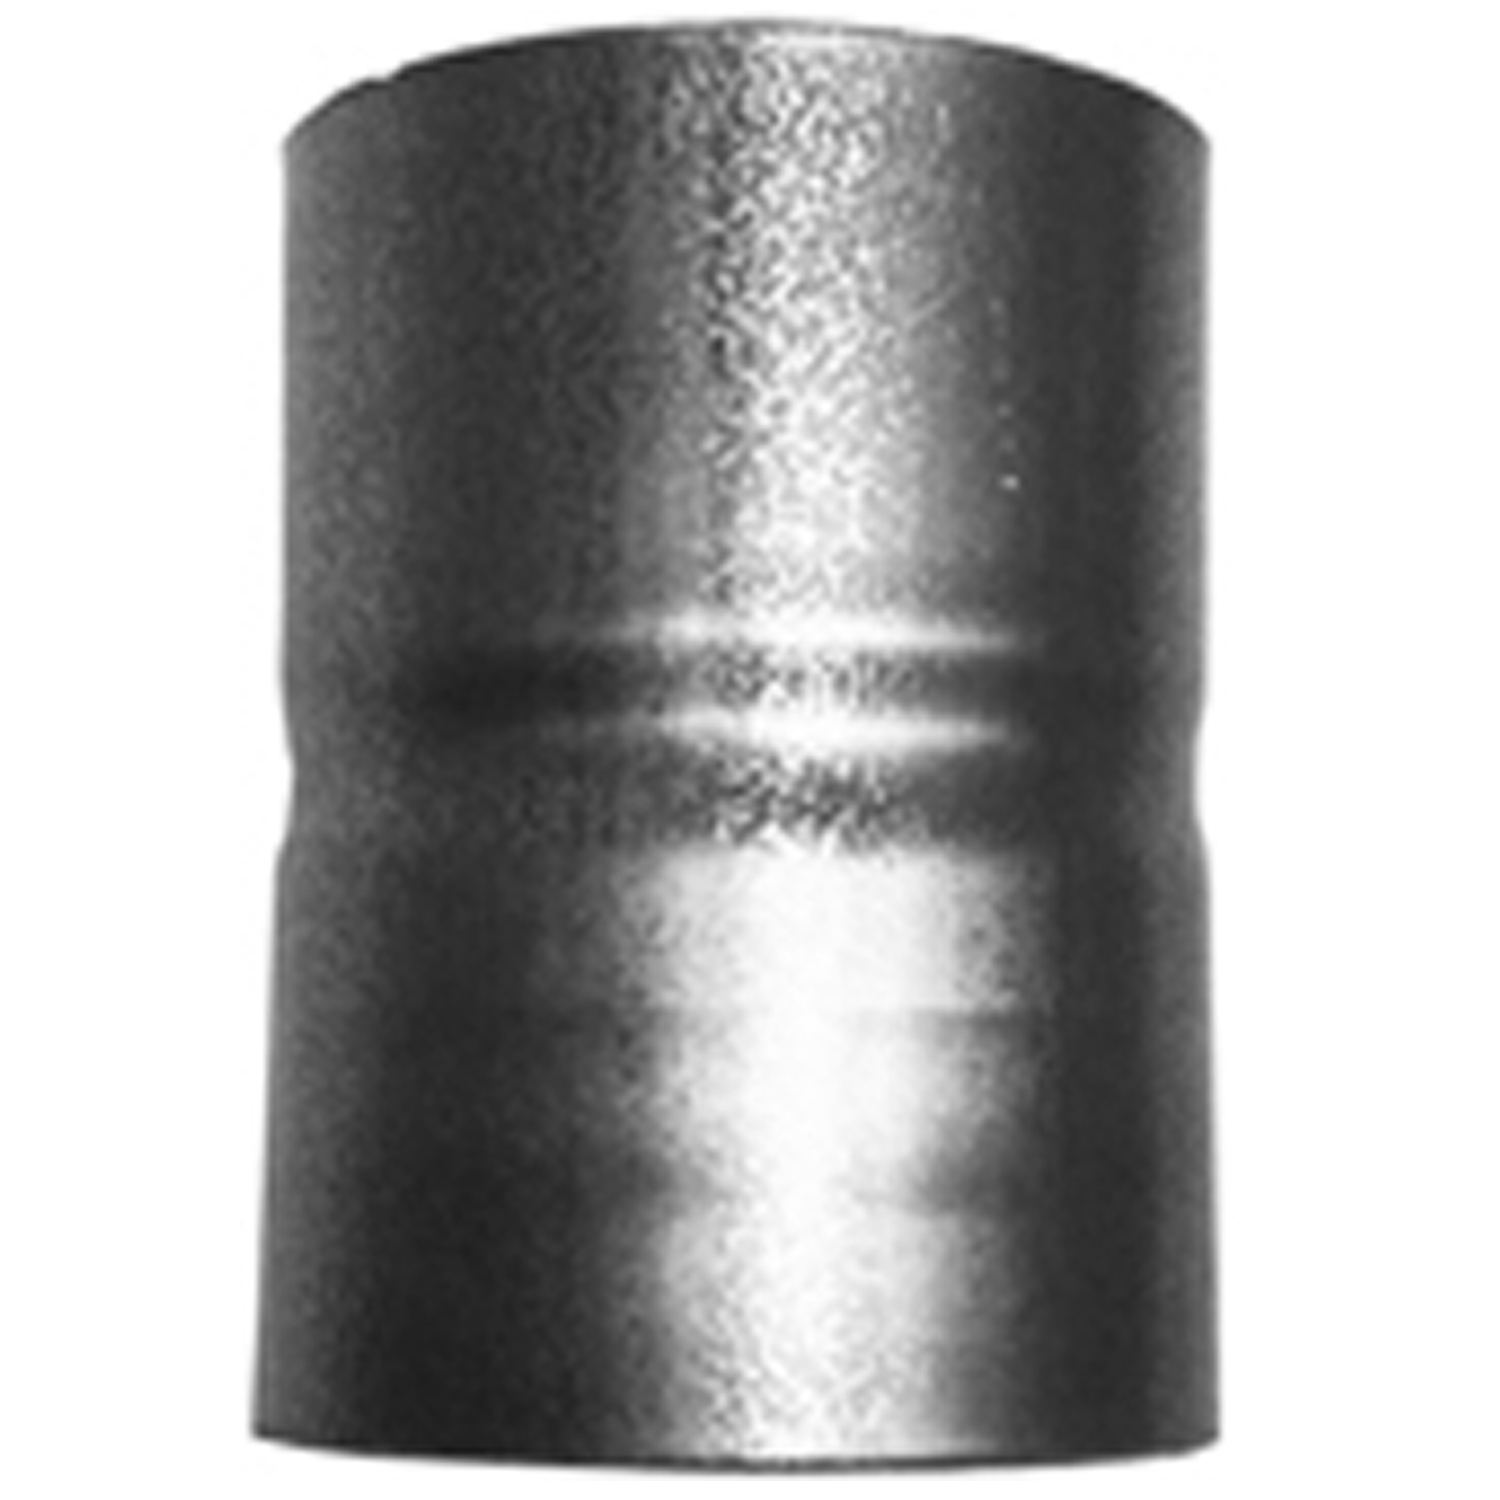 Nickson 17529 Exhaust Pipe Intermediate  1-3/4 Inch Diameter; Aluminized Steel - image 1 of 1